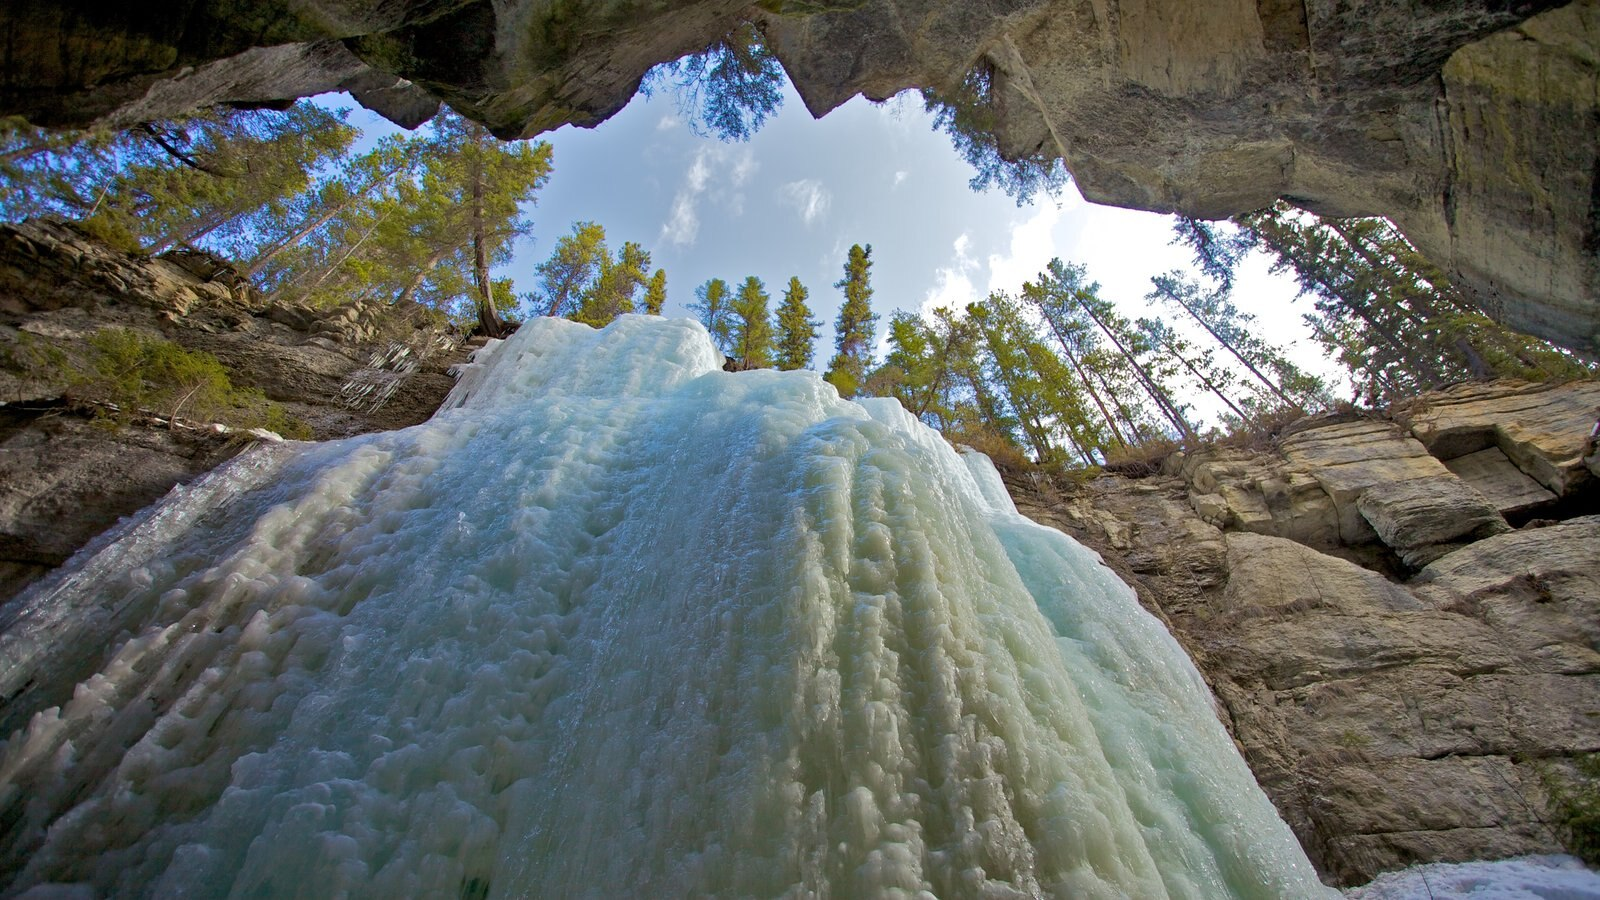 Maligne Canyon showing snow, landscape views and a gorge or canyon